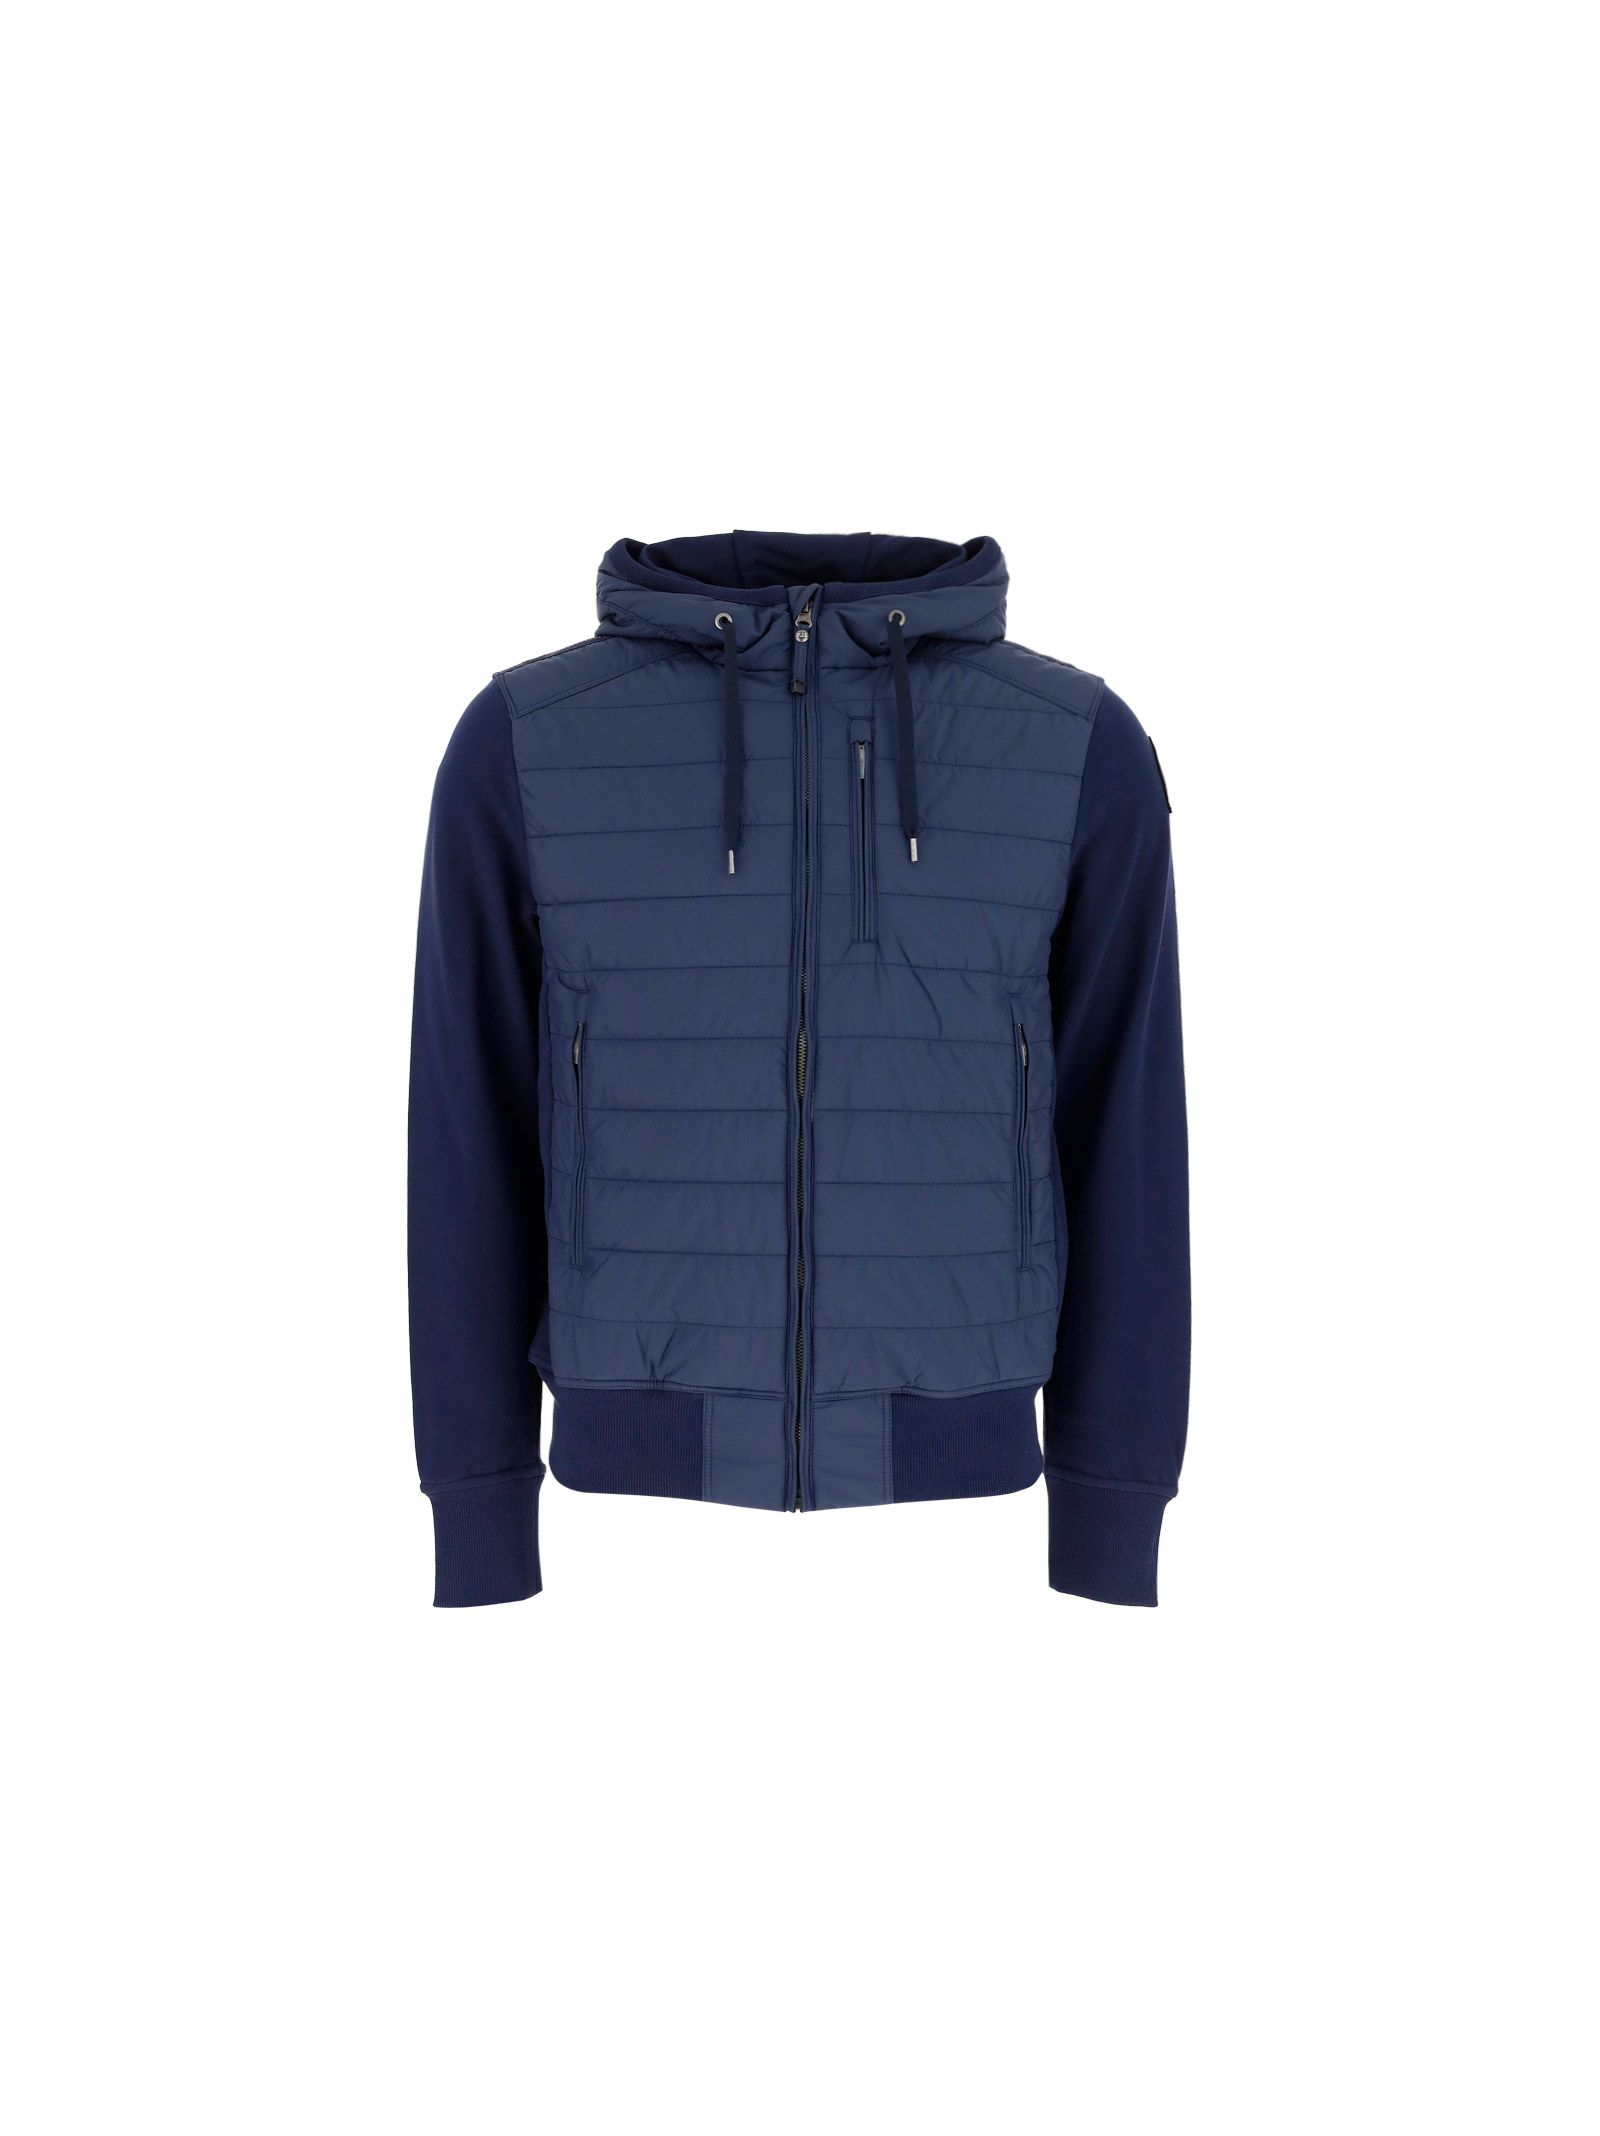 Parajumpers Jackets PARAJUMPERS MEN'S PMFLEFP01562 BLUE OTHER MATERIALS SWEATSHIRT